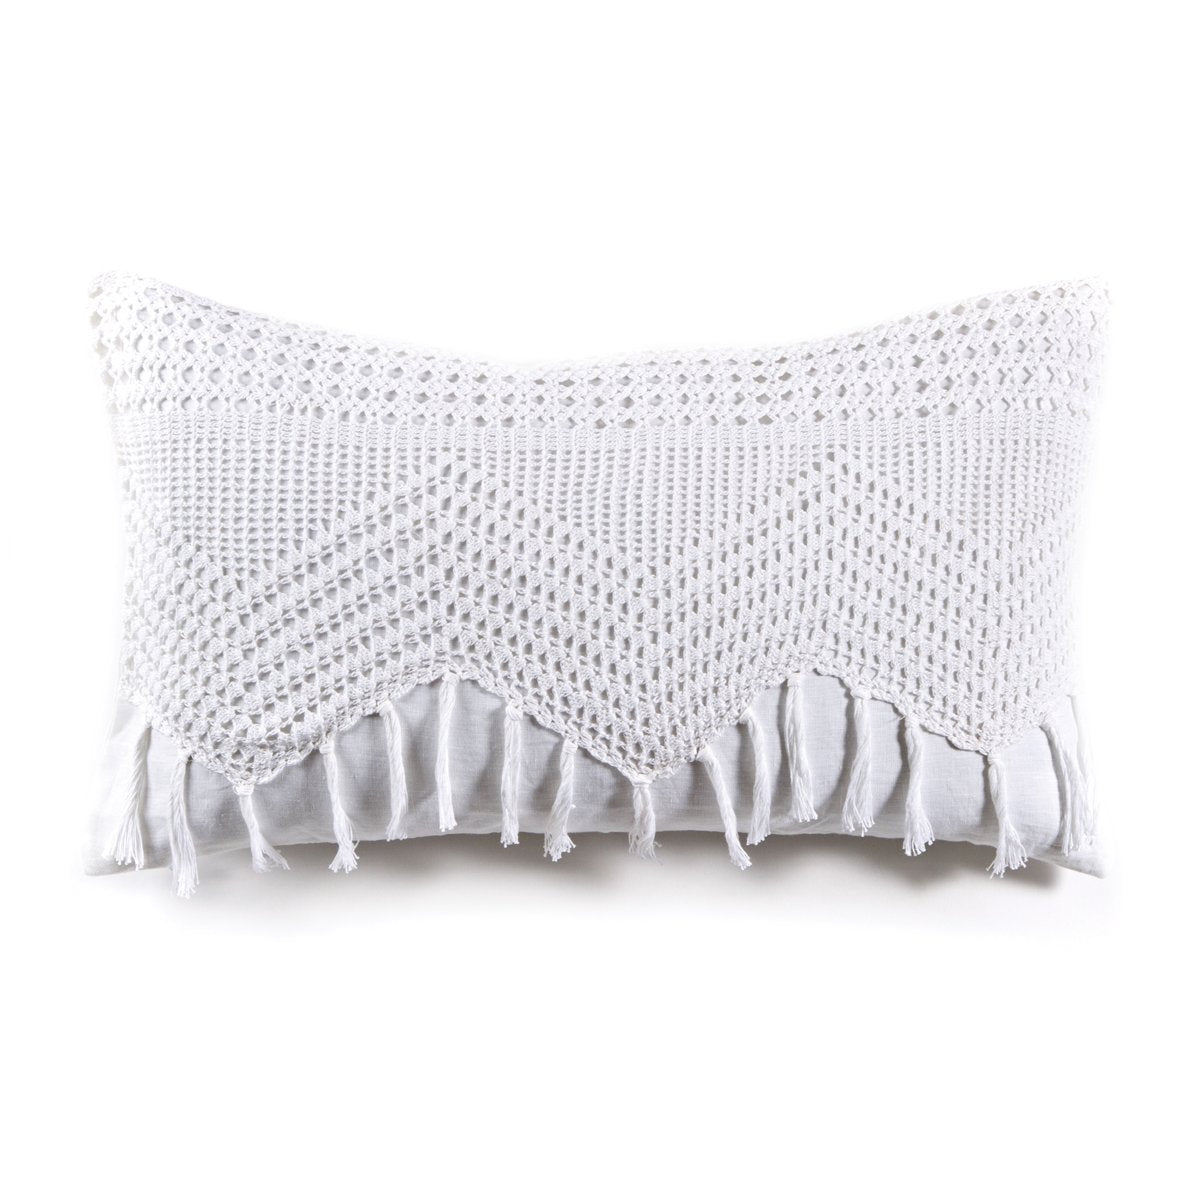 Vintage Crochet 14x24 Sham by Pom Pom at Home-Bed & Bath-White-A Cottage in the City